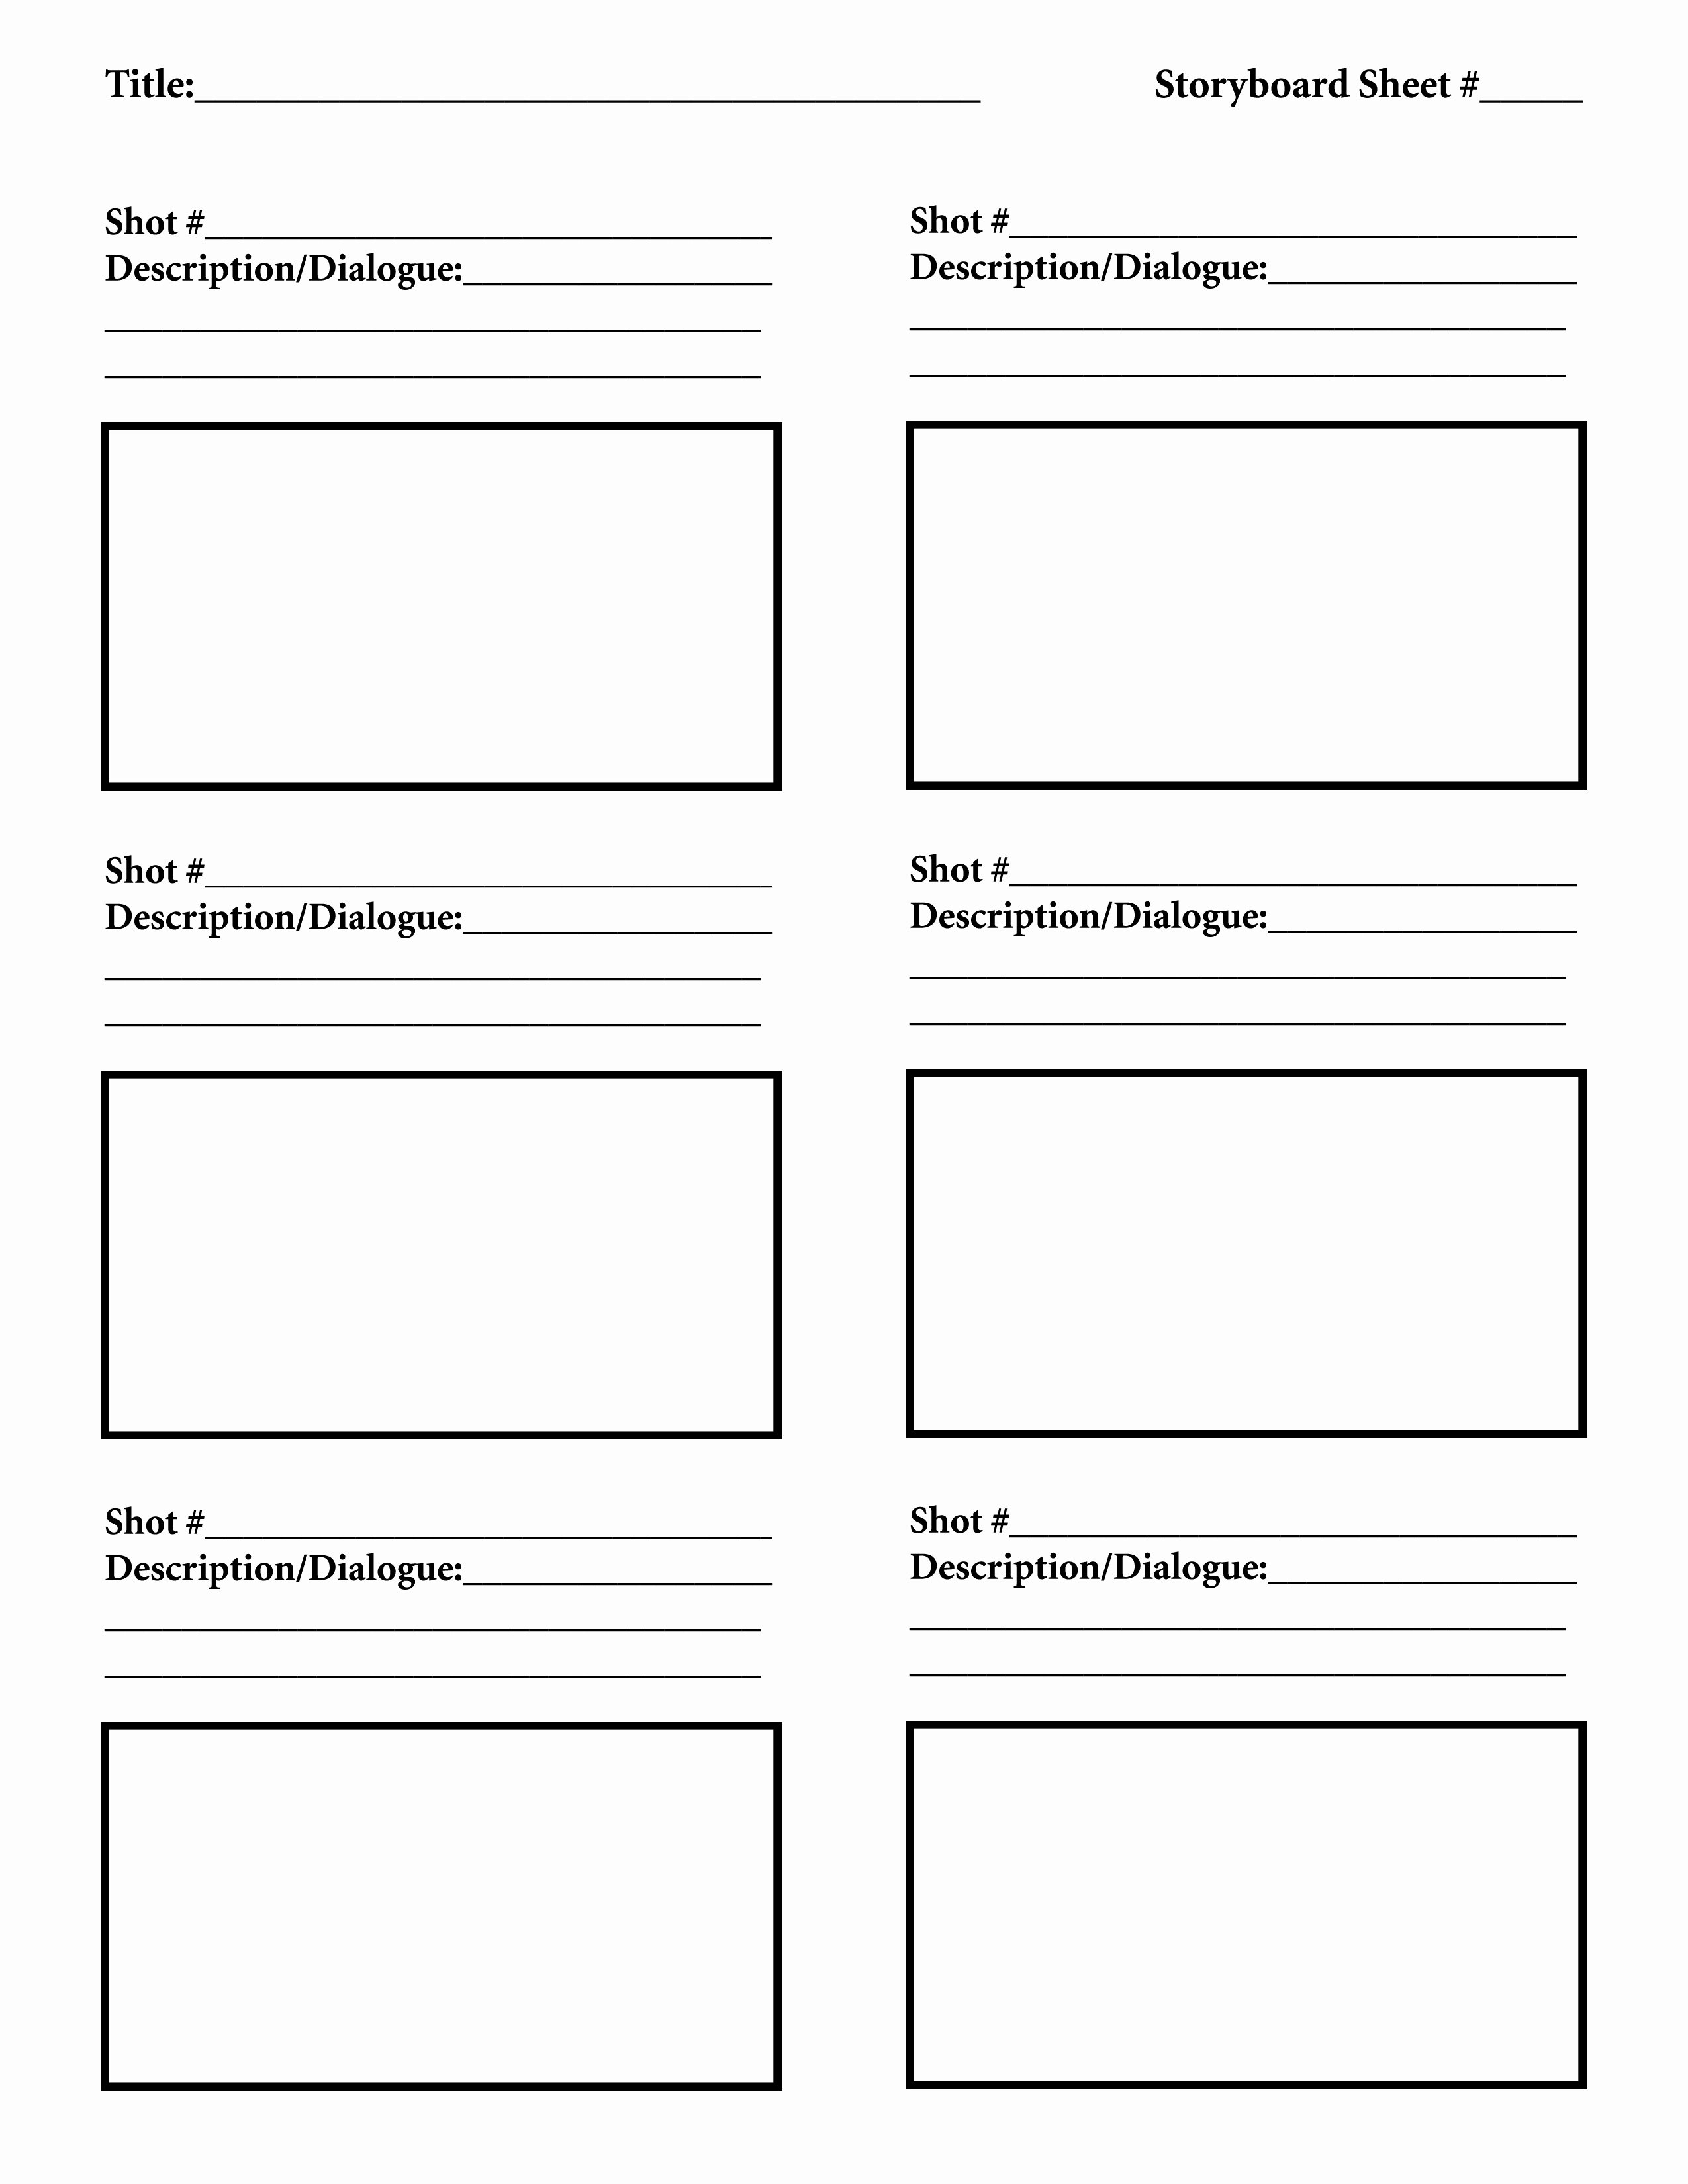 Film Storyboard Template Pdf Unique Download Free Storyboard Template Tutorials In